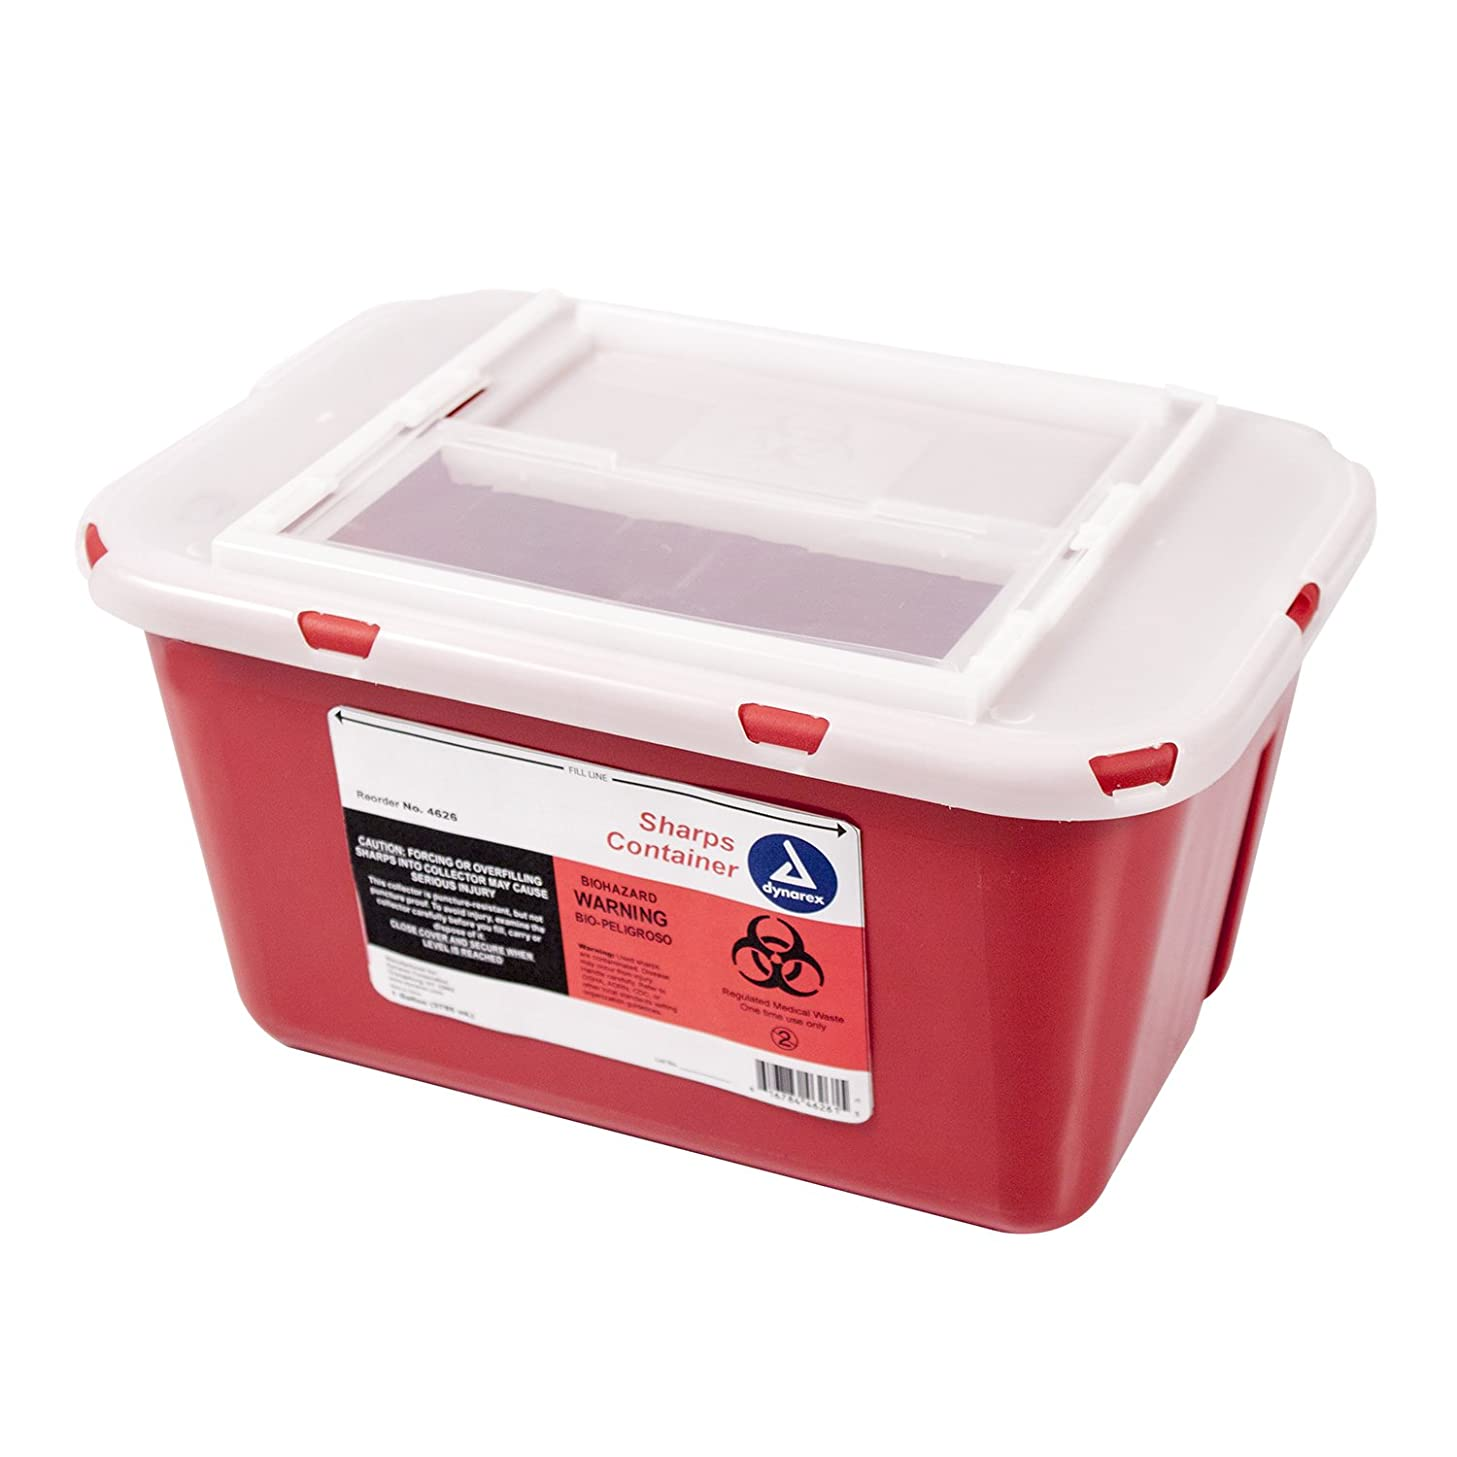 Dynarex Sharps Container - Biohazard Multiple-Use Needle Disposable - Puncture Resistant - One Handed Use - 1 Gallon